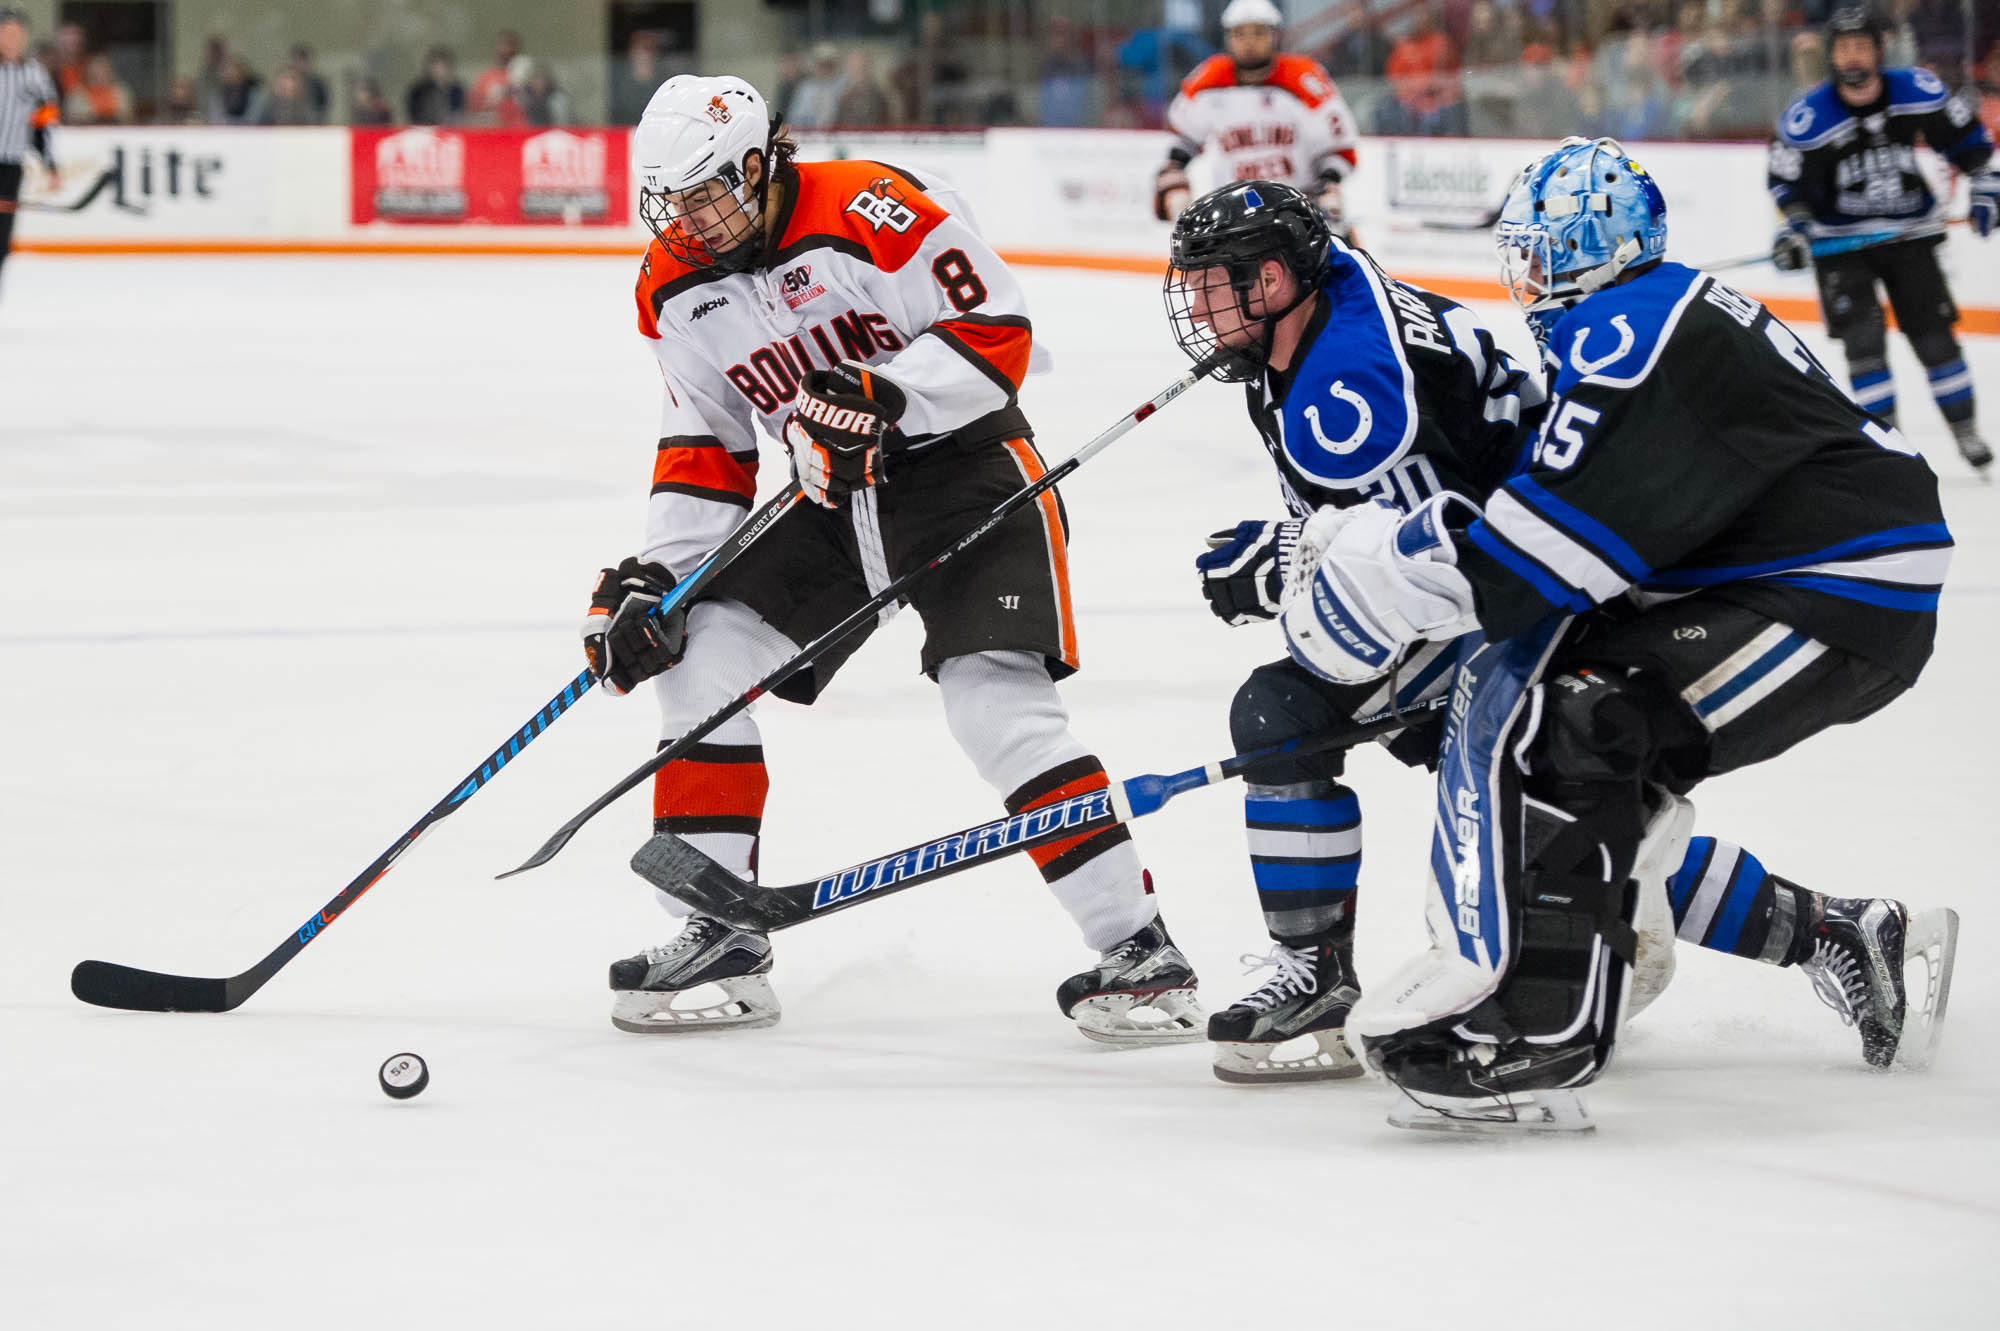 BG plays well, moves closer to home ice